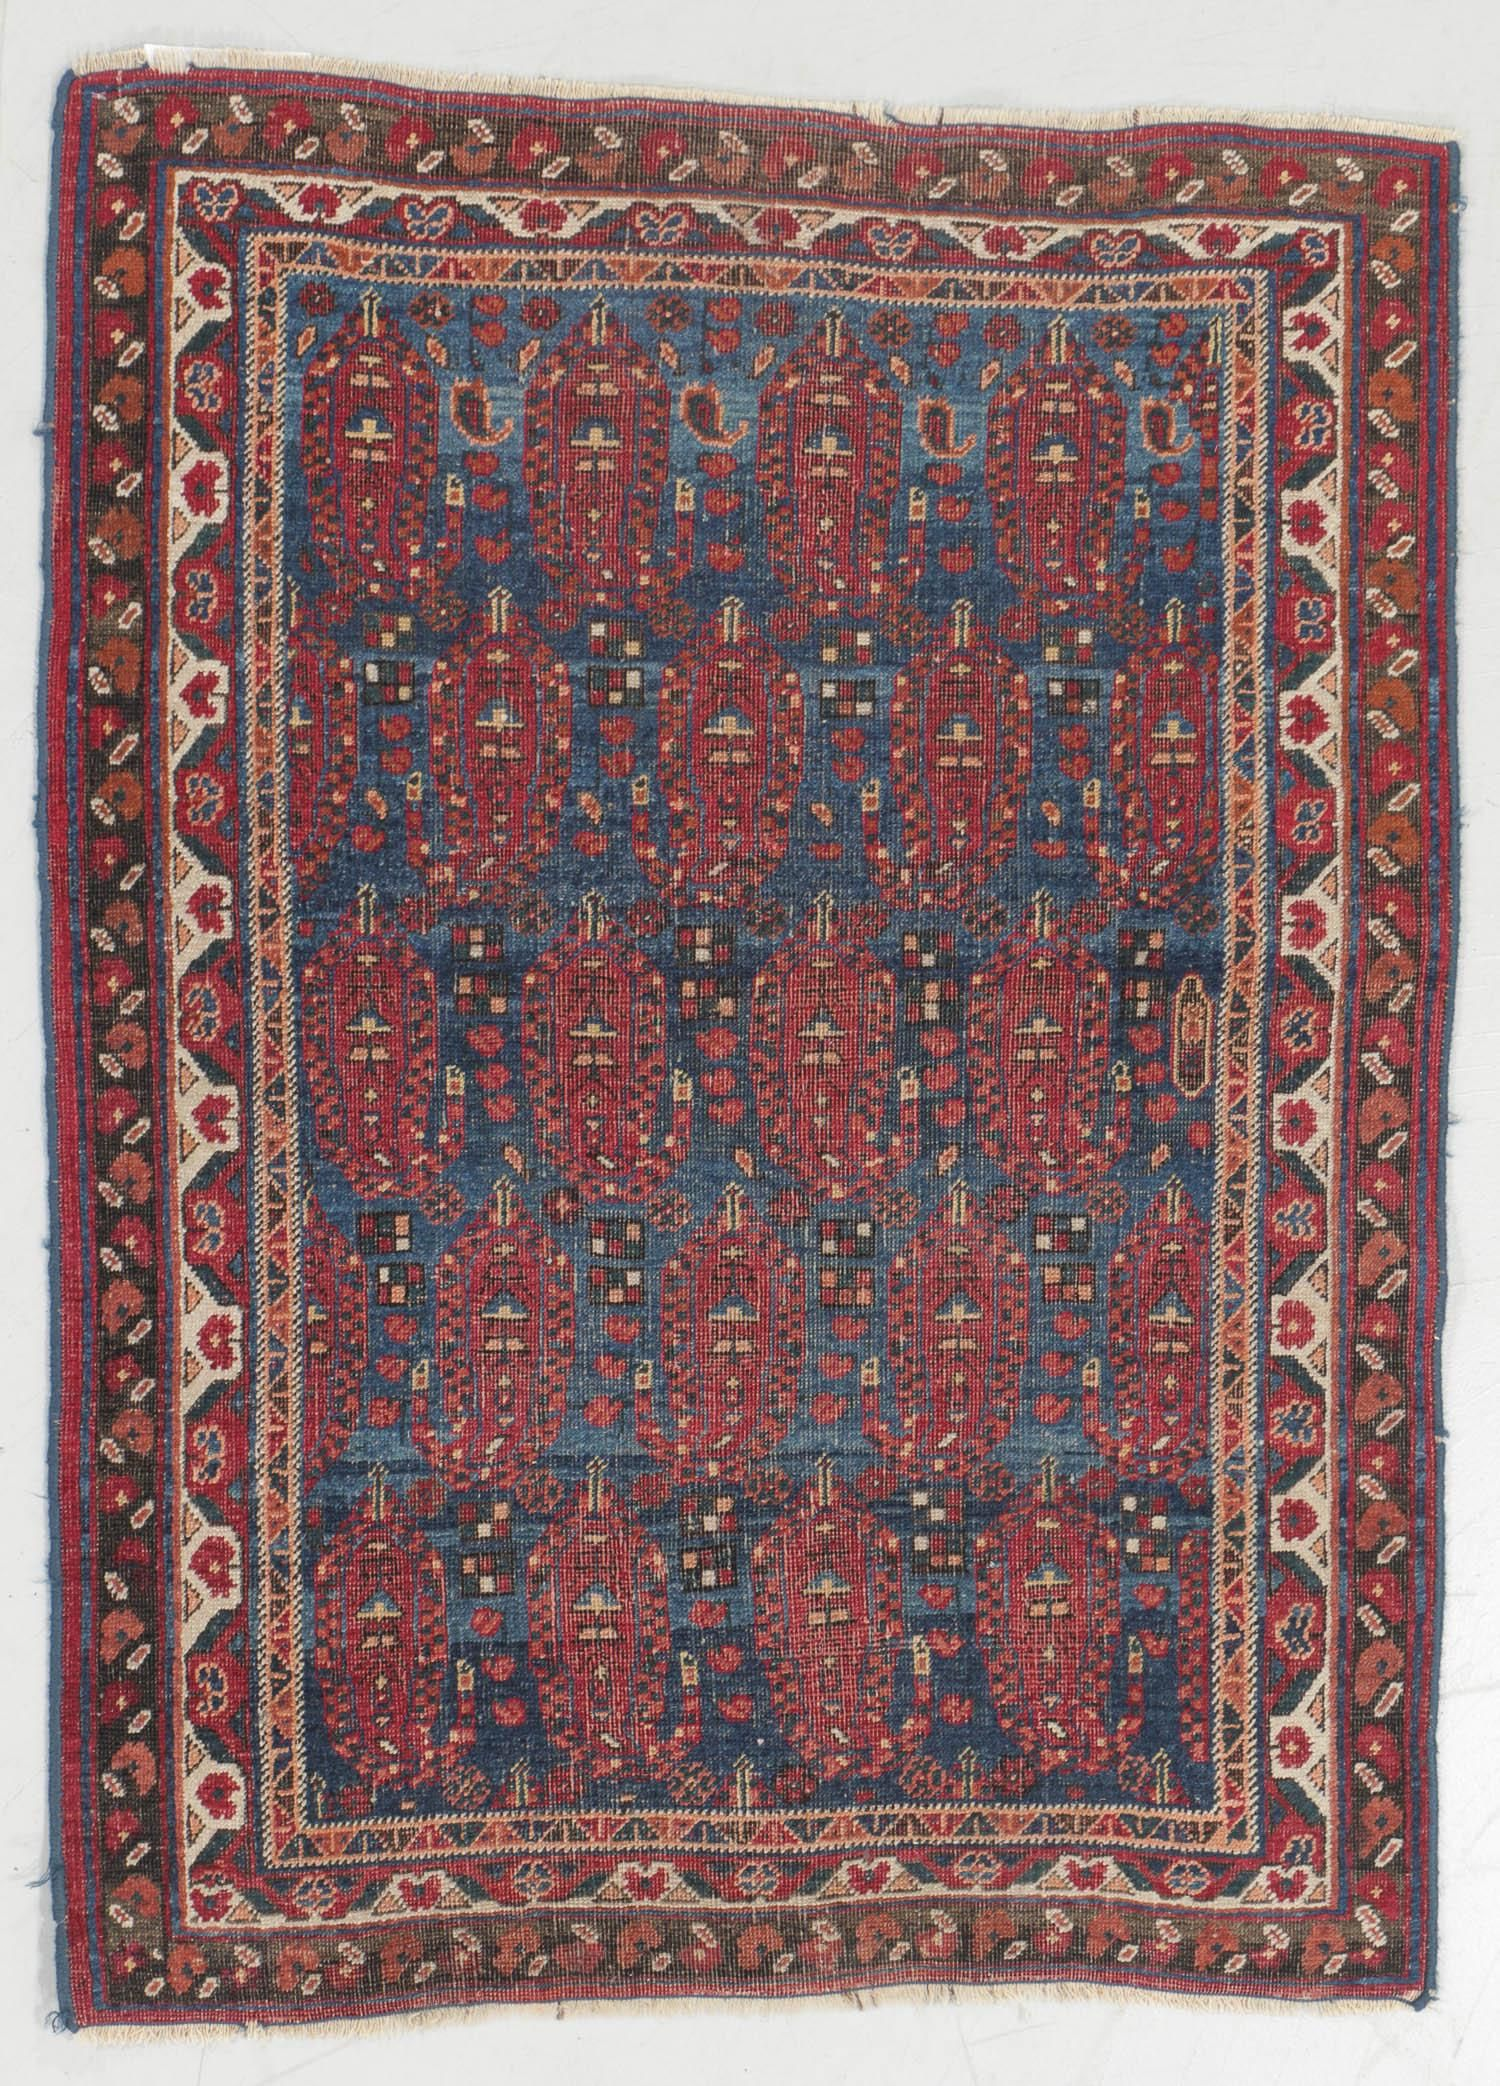 Antique Afshar Rug, Persia: 3' x 4'2''